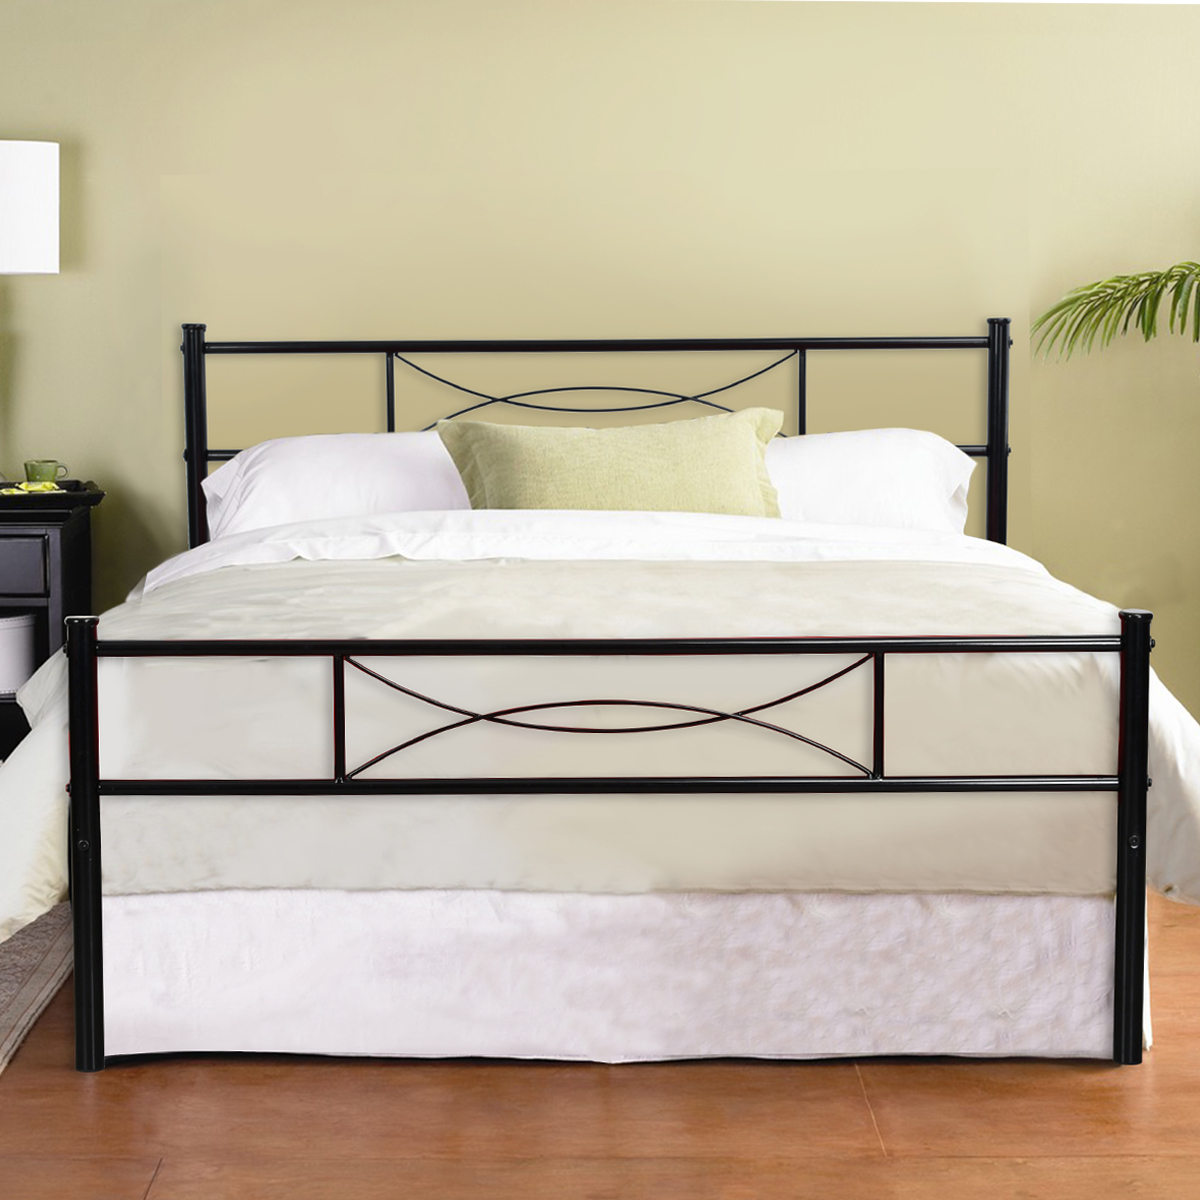 Platform metal bed frame foundation headboard furniture for Twin bed frame